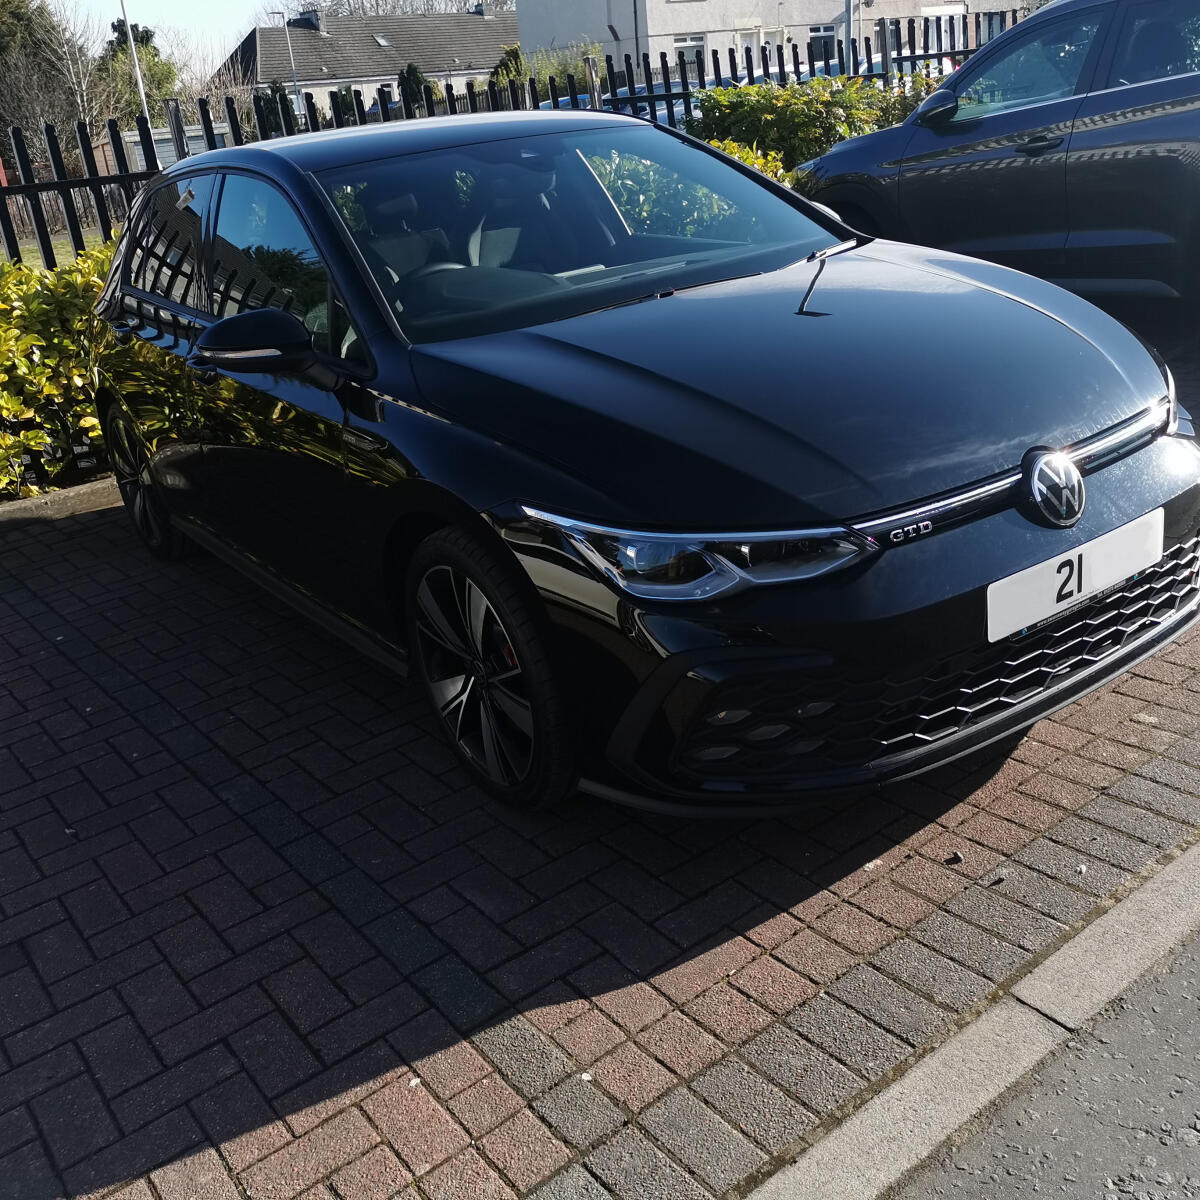 First Vehicle Leasing 5 star review on 10th March 2021